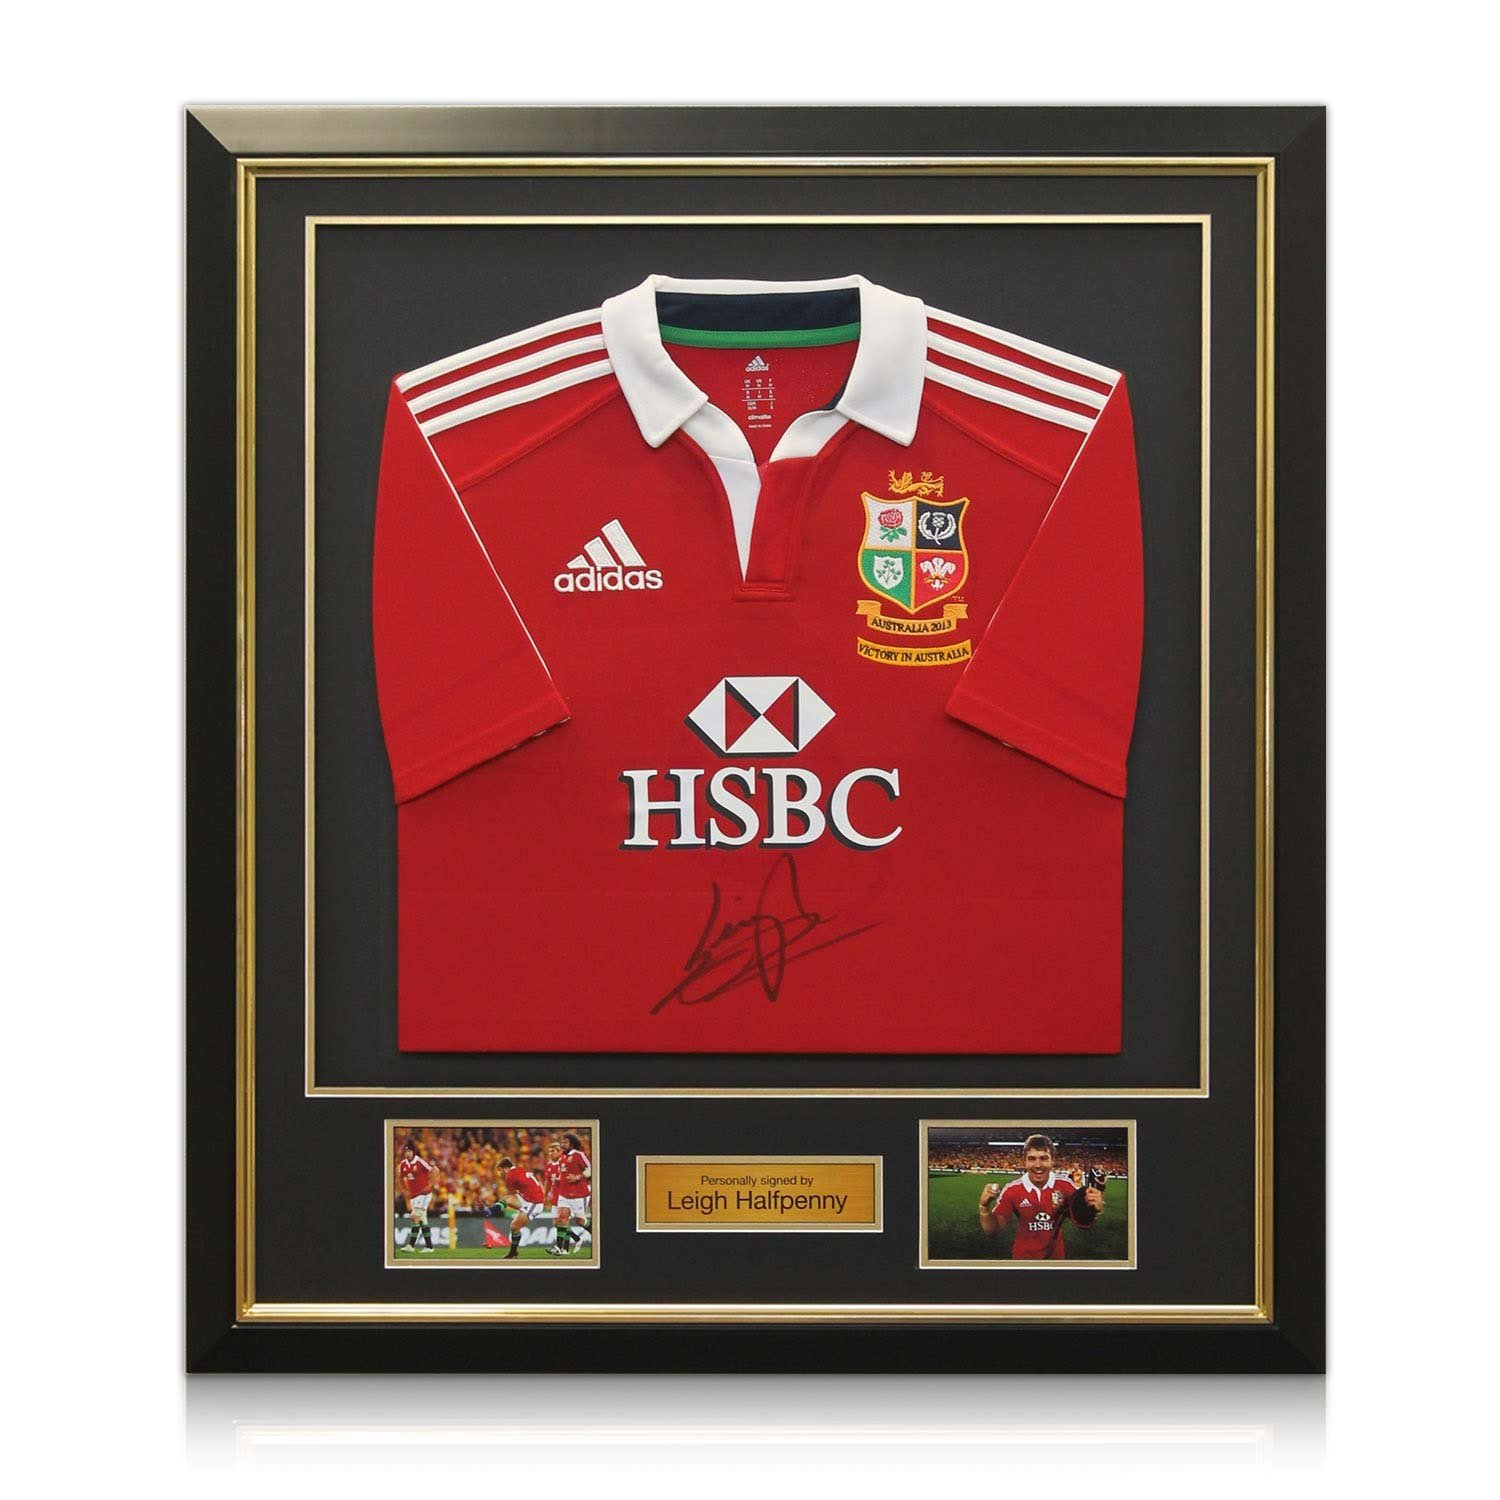 858ddcc9 Deluxe Framed Leigh Halfpenny Signed British Lions Rugby Shirt With ...